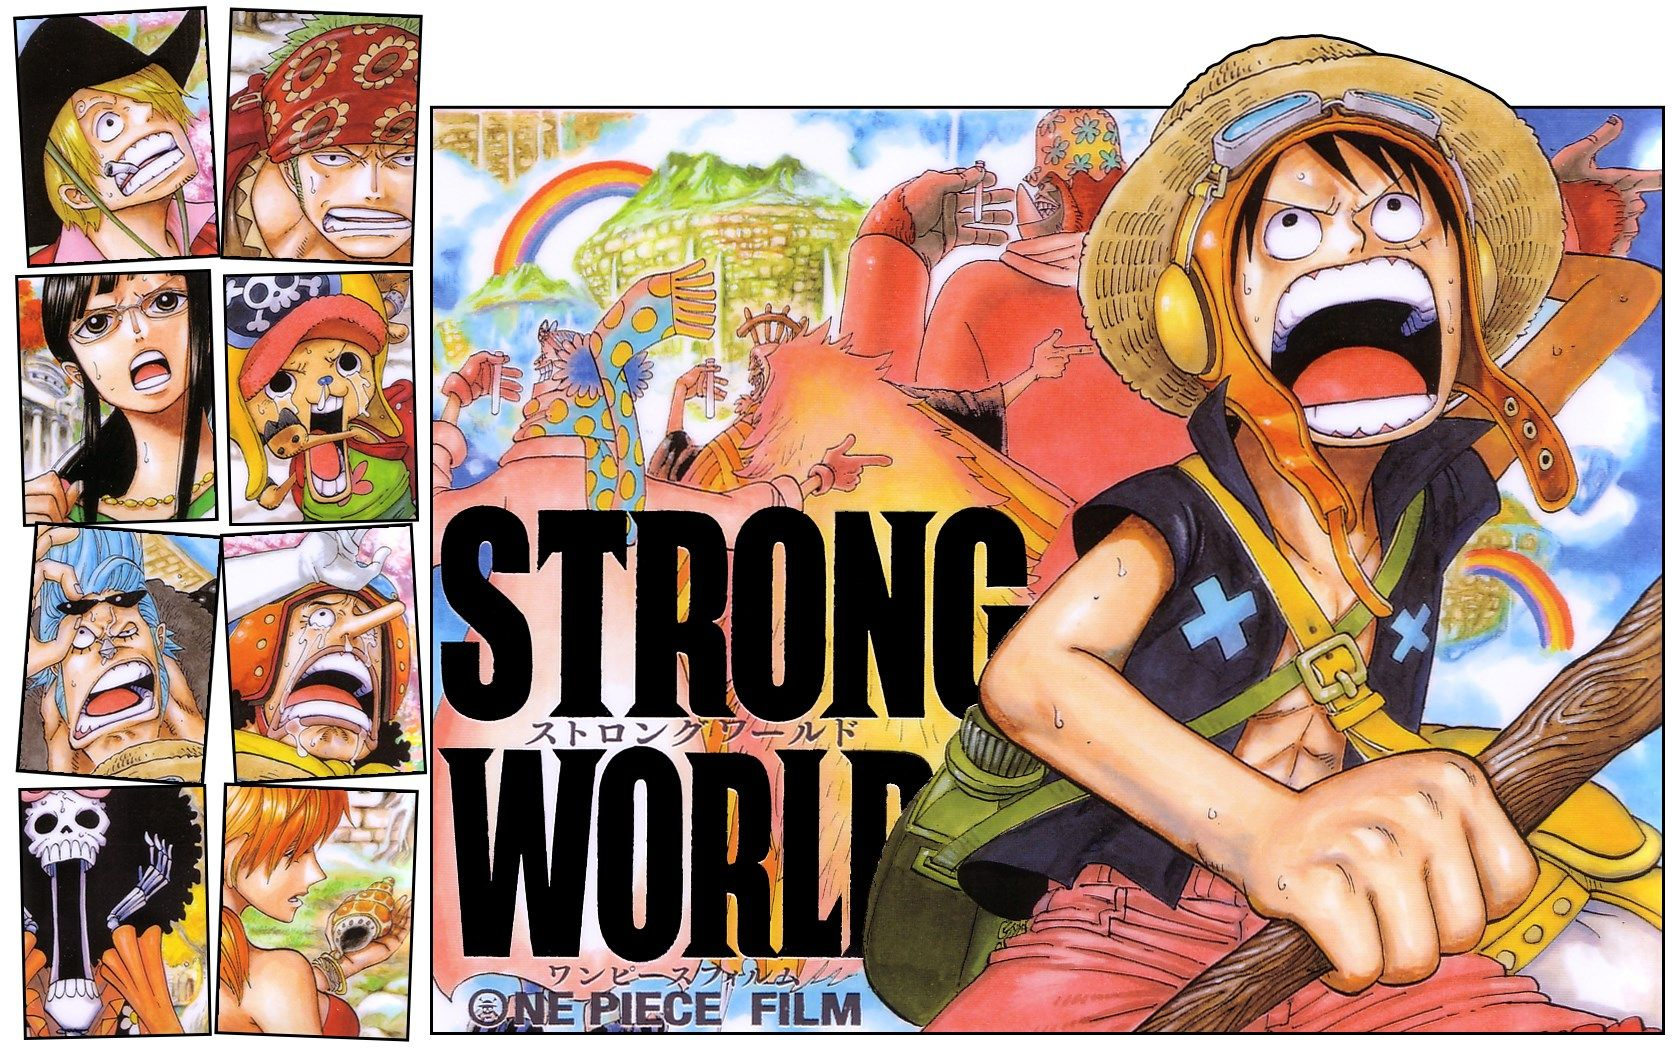 1e6f24117b18c 1680x1050px one piece themed wallpaper for desktops by Bronson Young ...